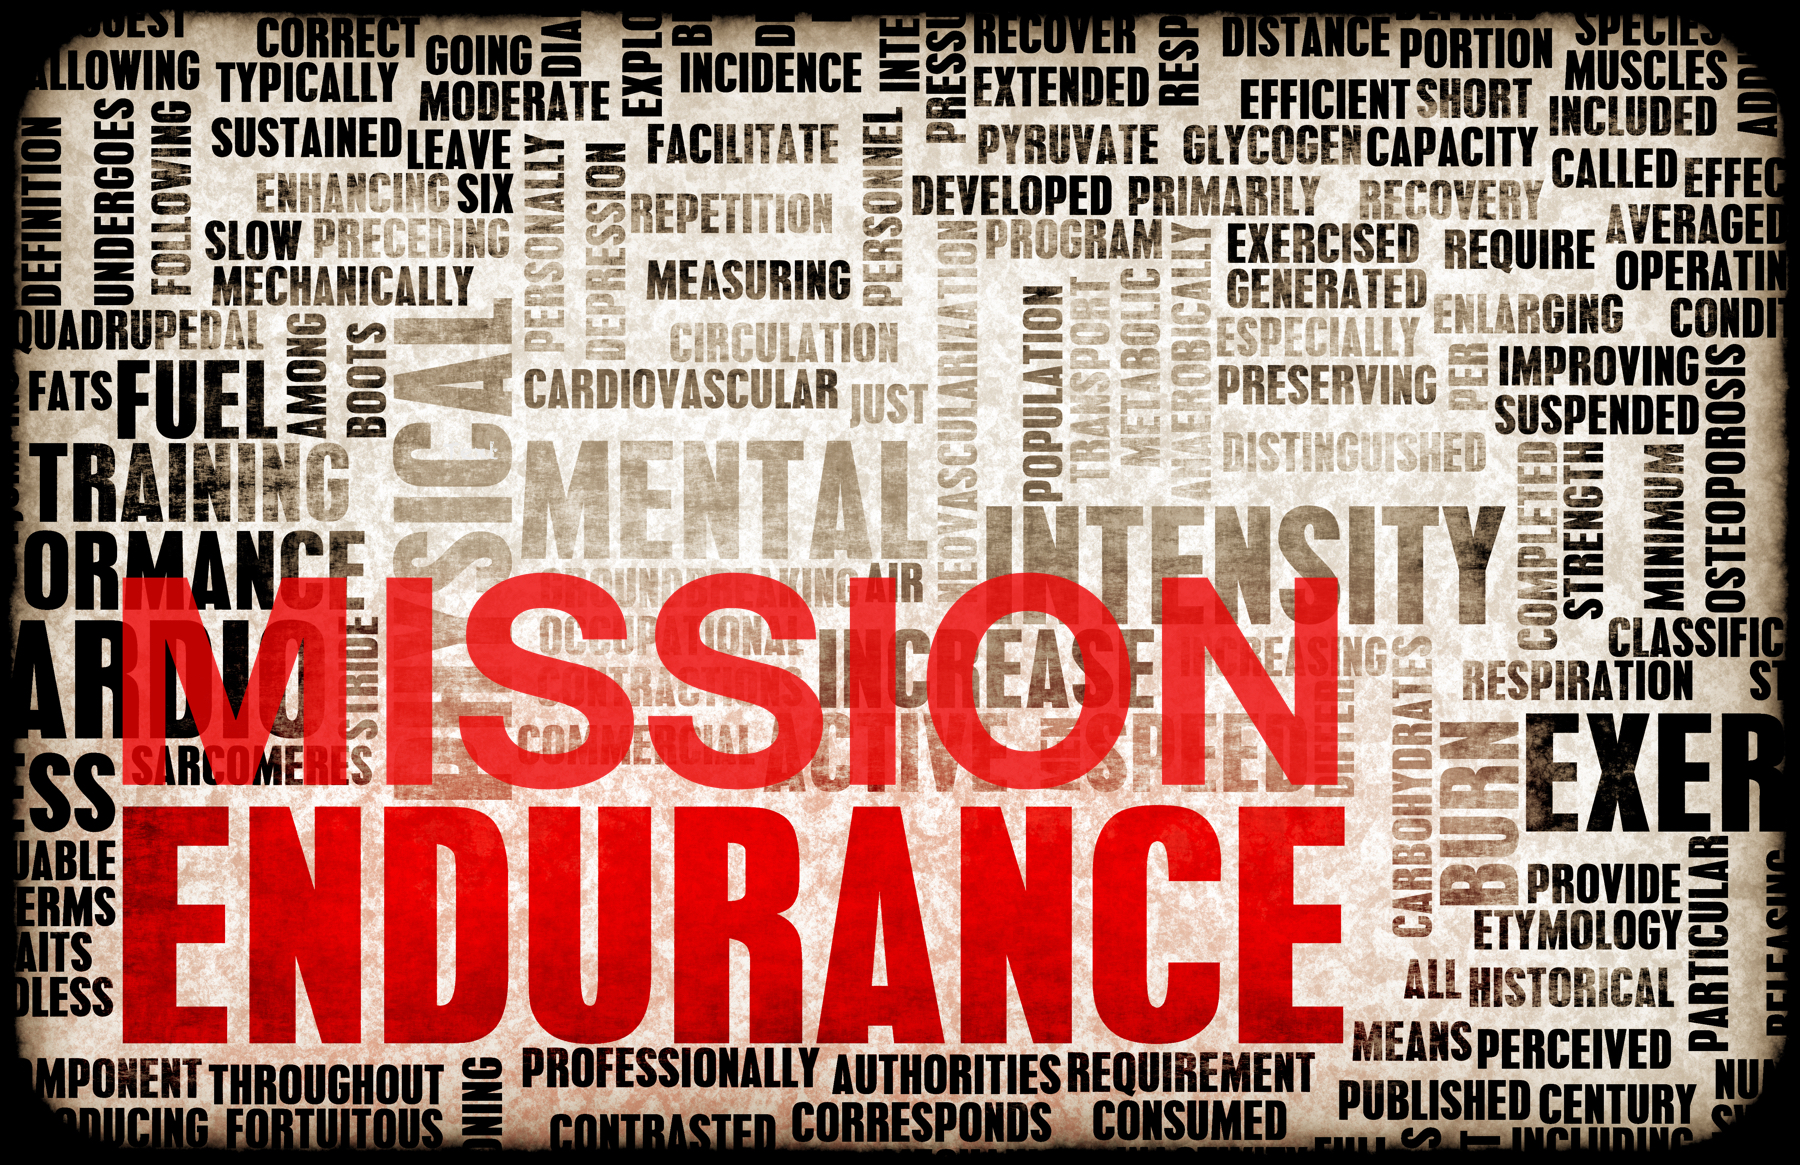 What really endures in your mission?